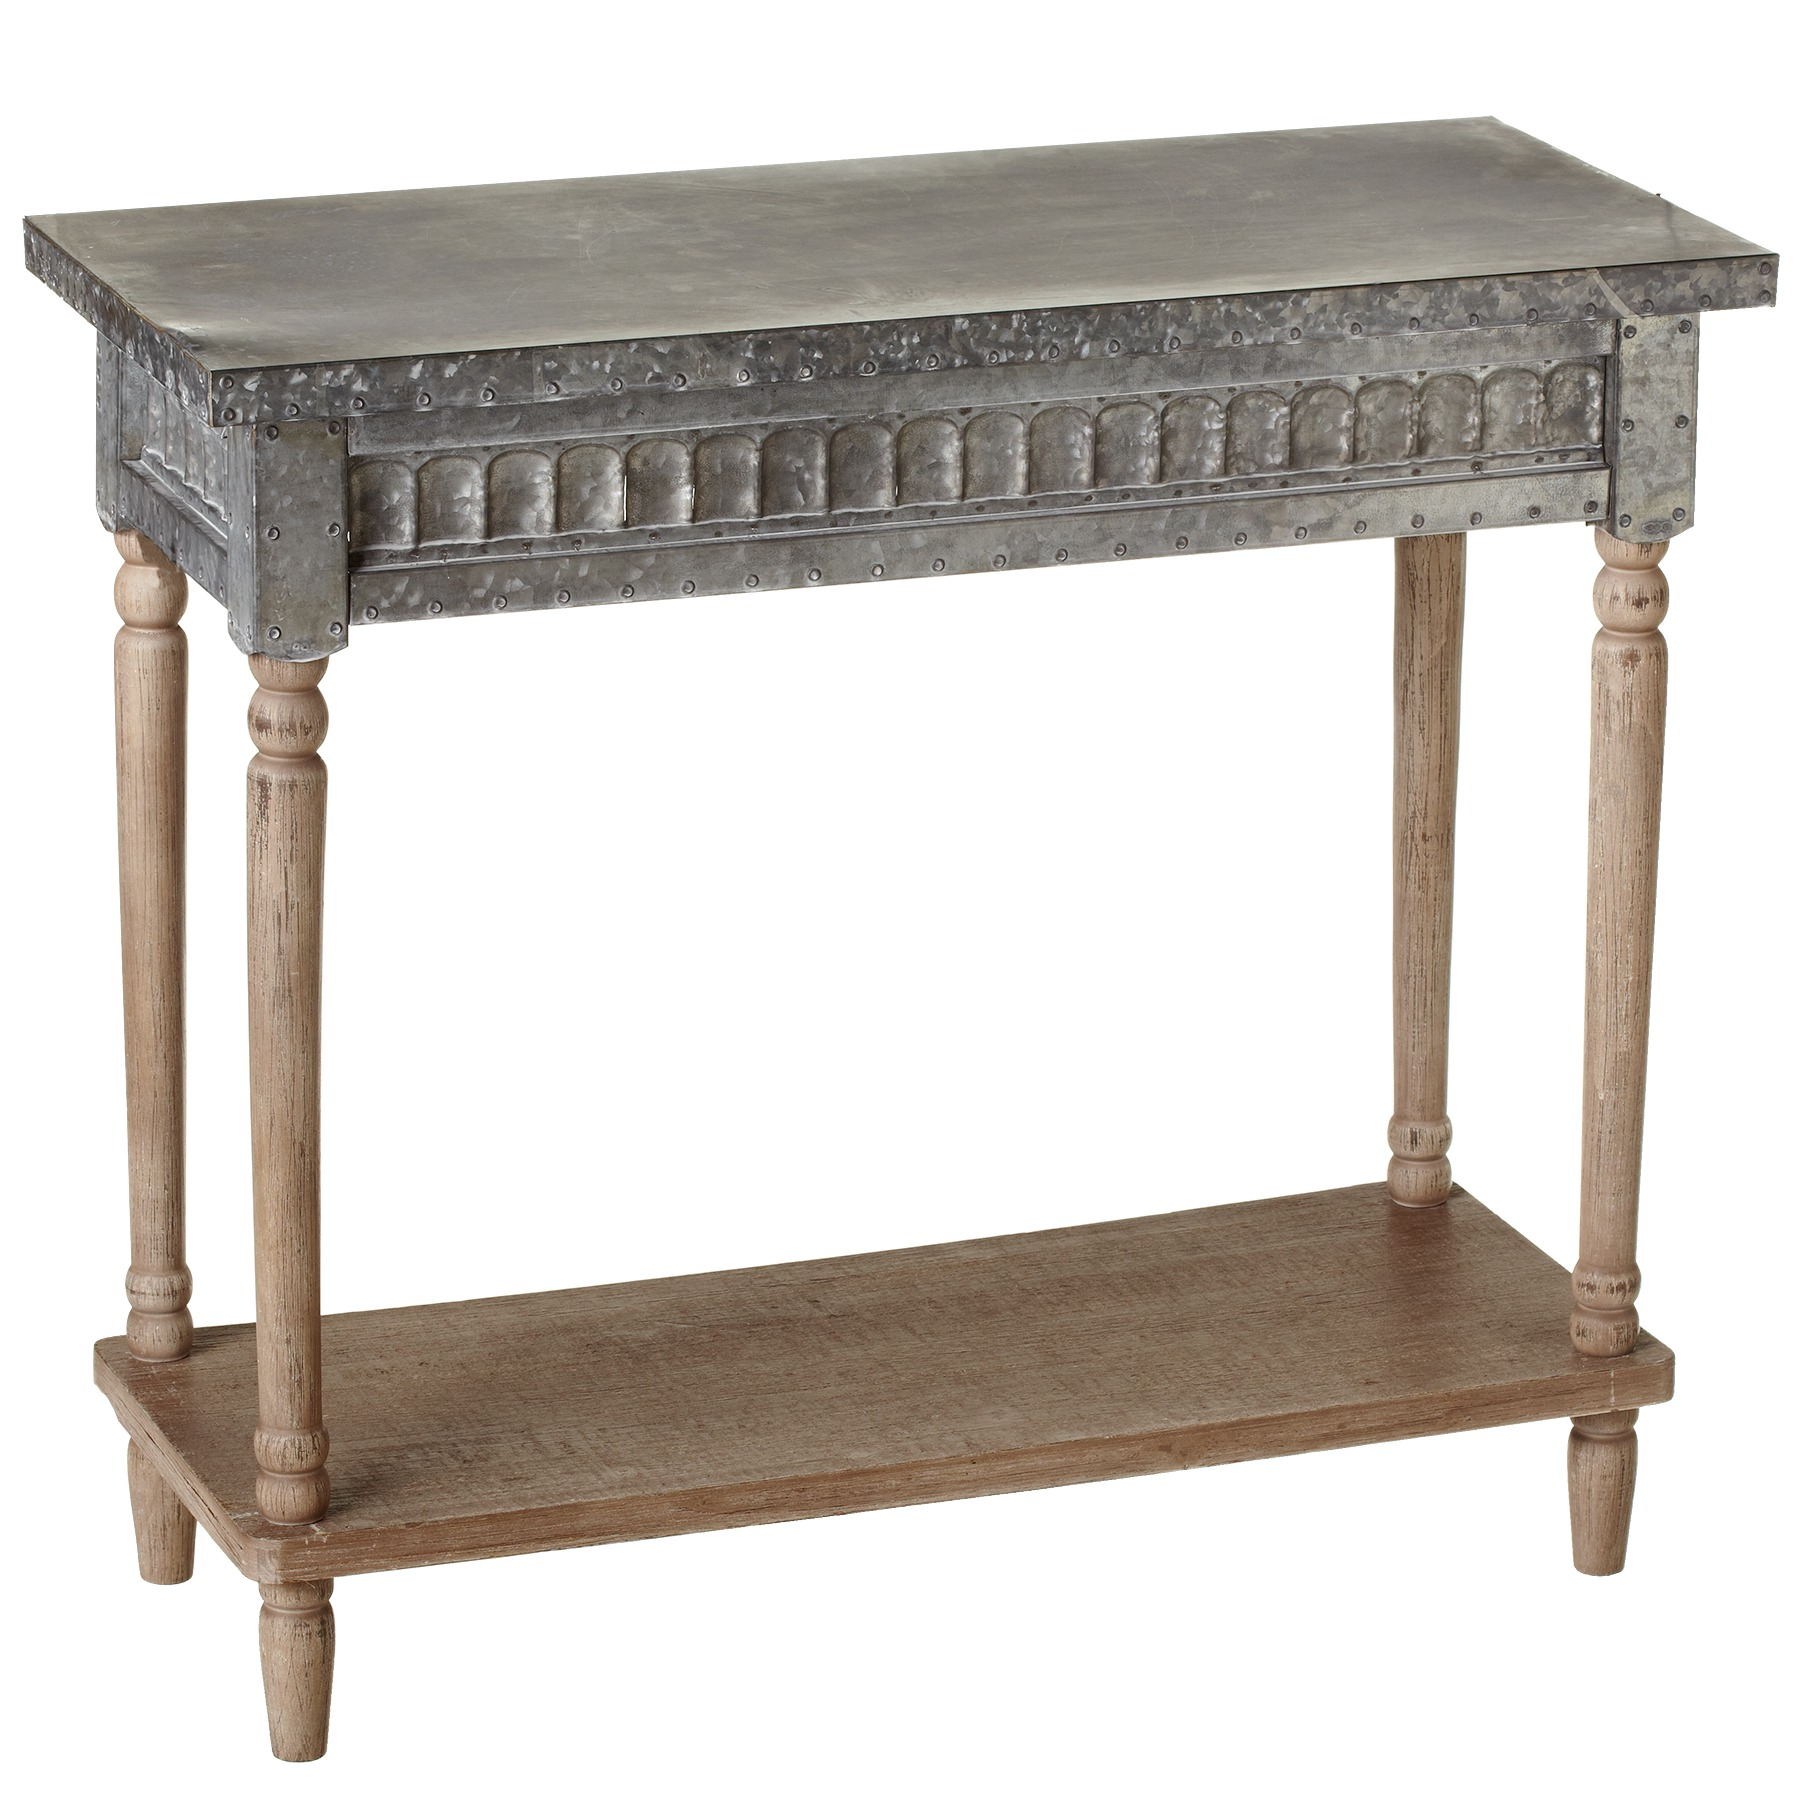 CBK Metal Galvanized Console Table With Greywash Legs And Shelf 158737